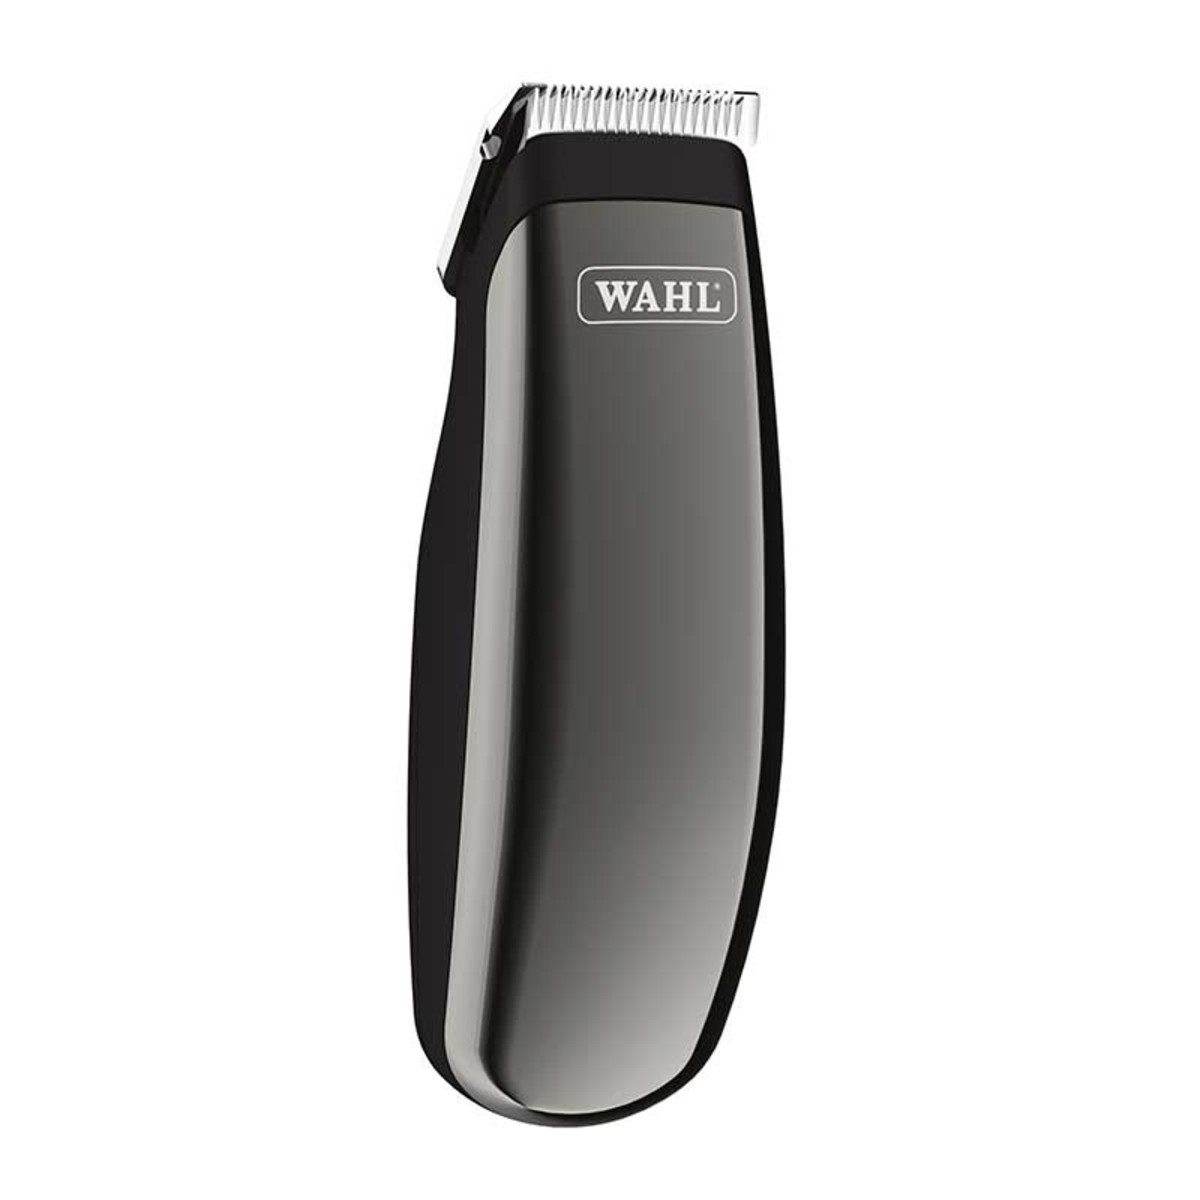 Wahl Super Pocket Pro Trimmer for Groomers?resizeid=5&resizeh=400&resizew=400